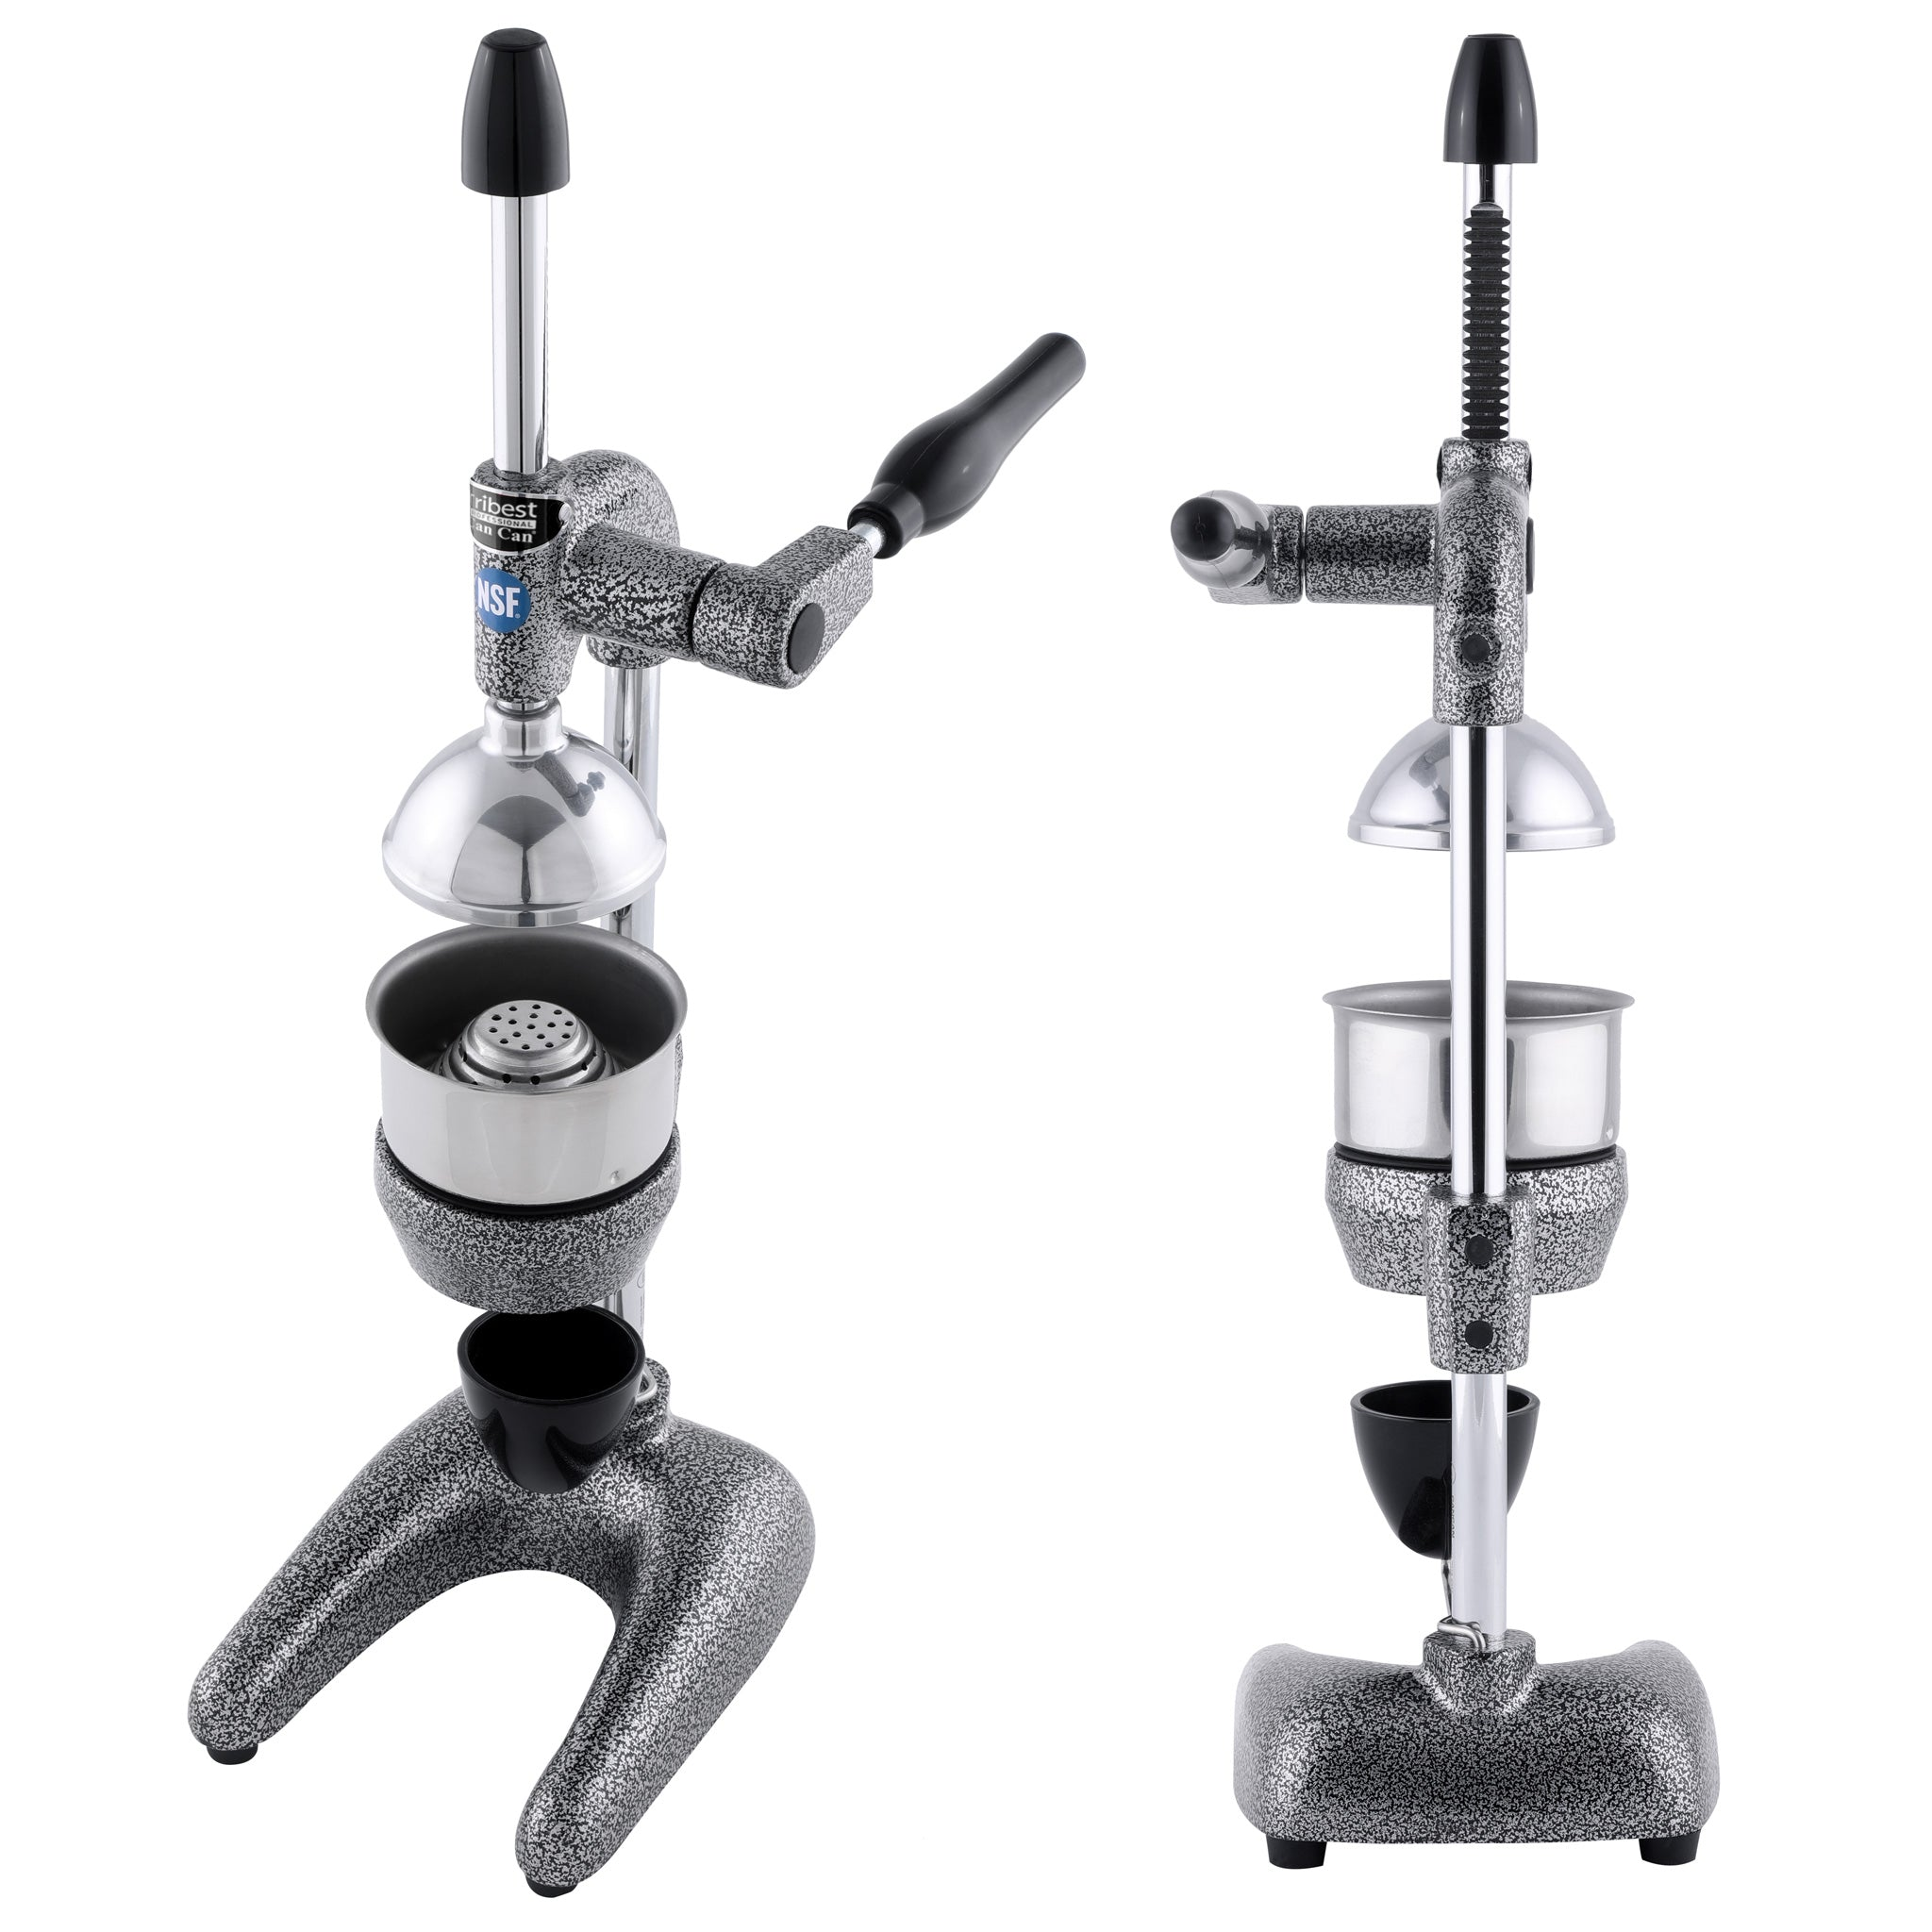 Tribest Professional Cancan Manual Juice Press MJP-100